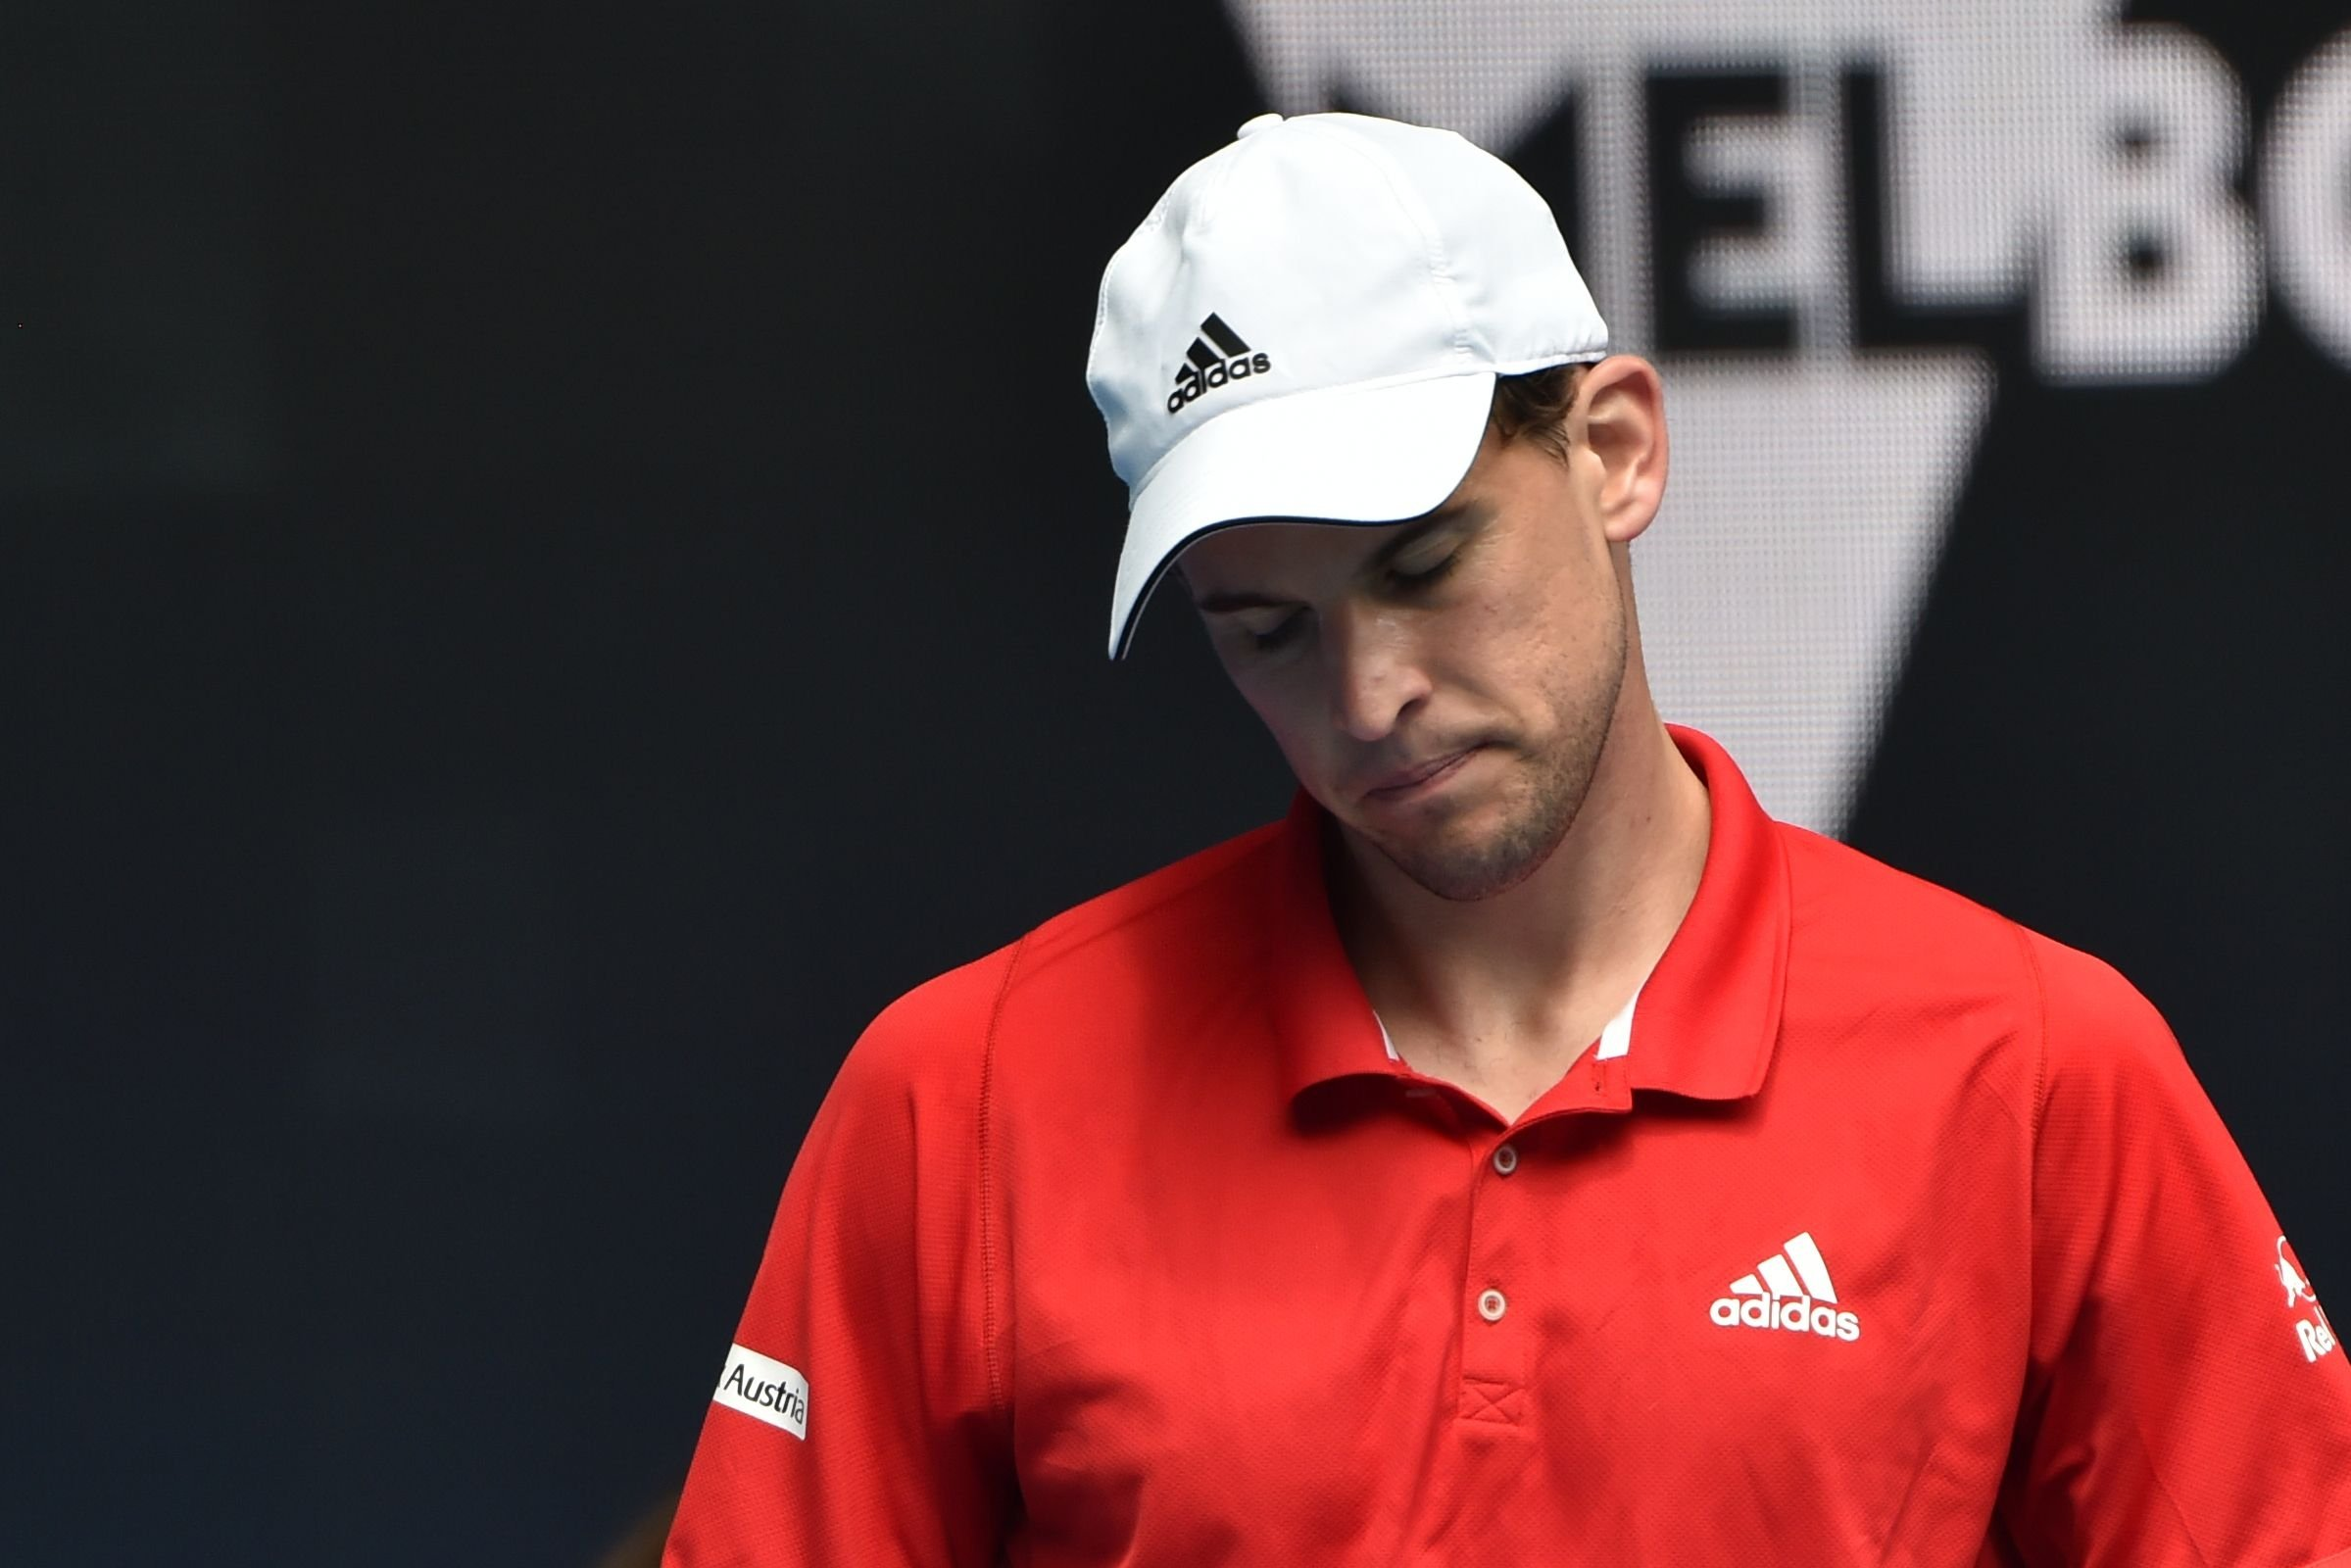 Austria's Dominic Thiem reacts during his group C match at the 2021 ATP Cup against Italy's Matteo Berrettini, Melbourne, Australia, Feb. 2, 2021. (AFP Photo)